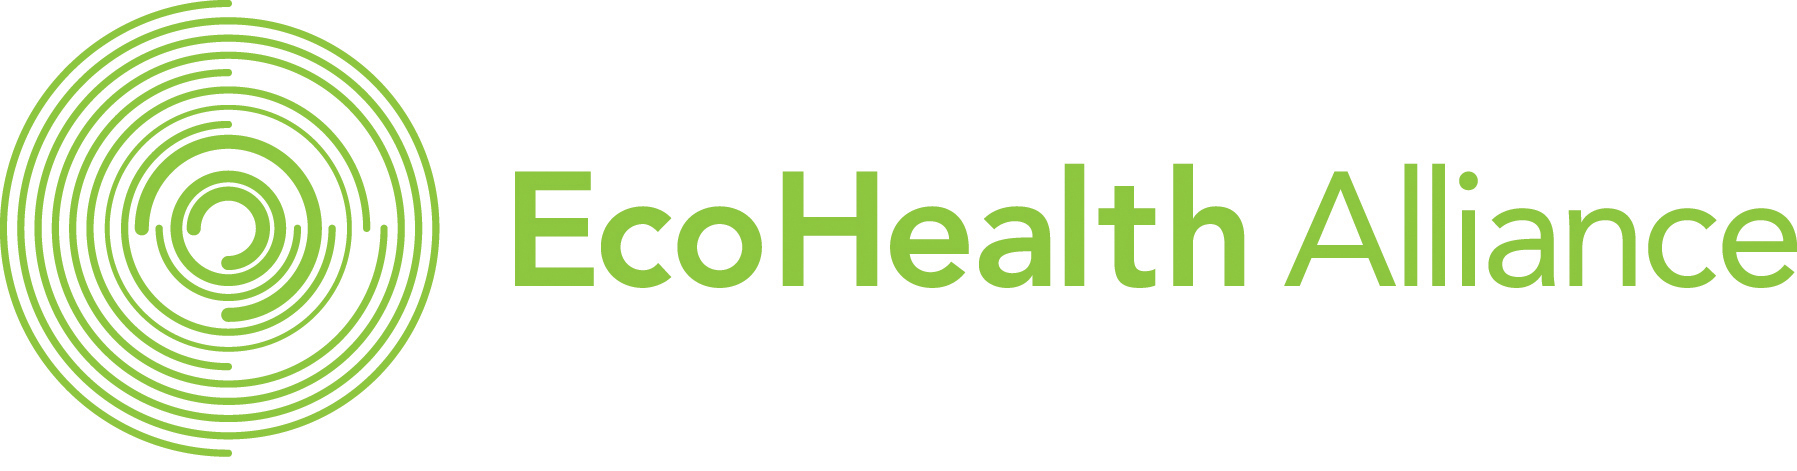 EcoHealth Alliance logo